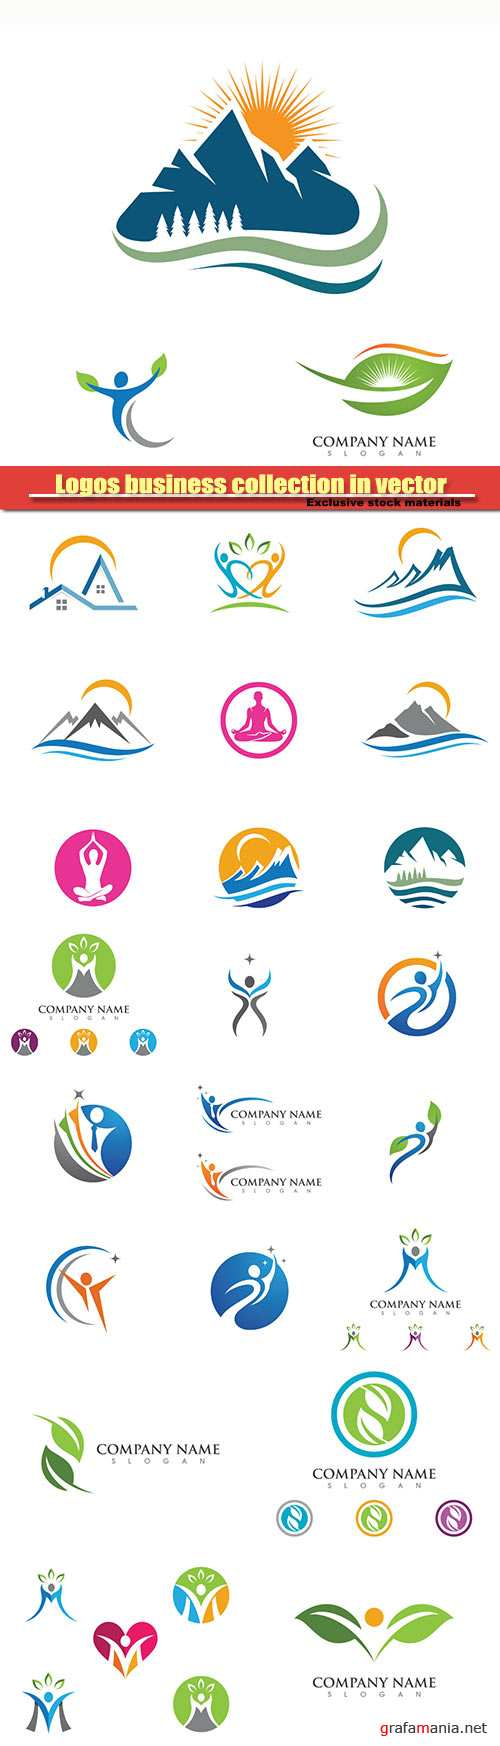 Logos business collection in vector #9